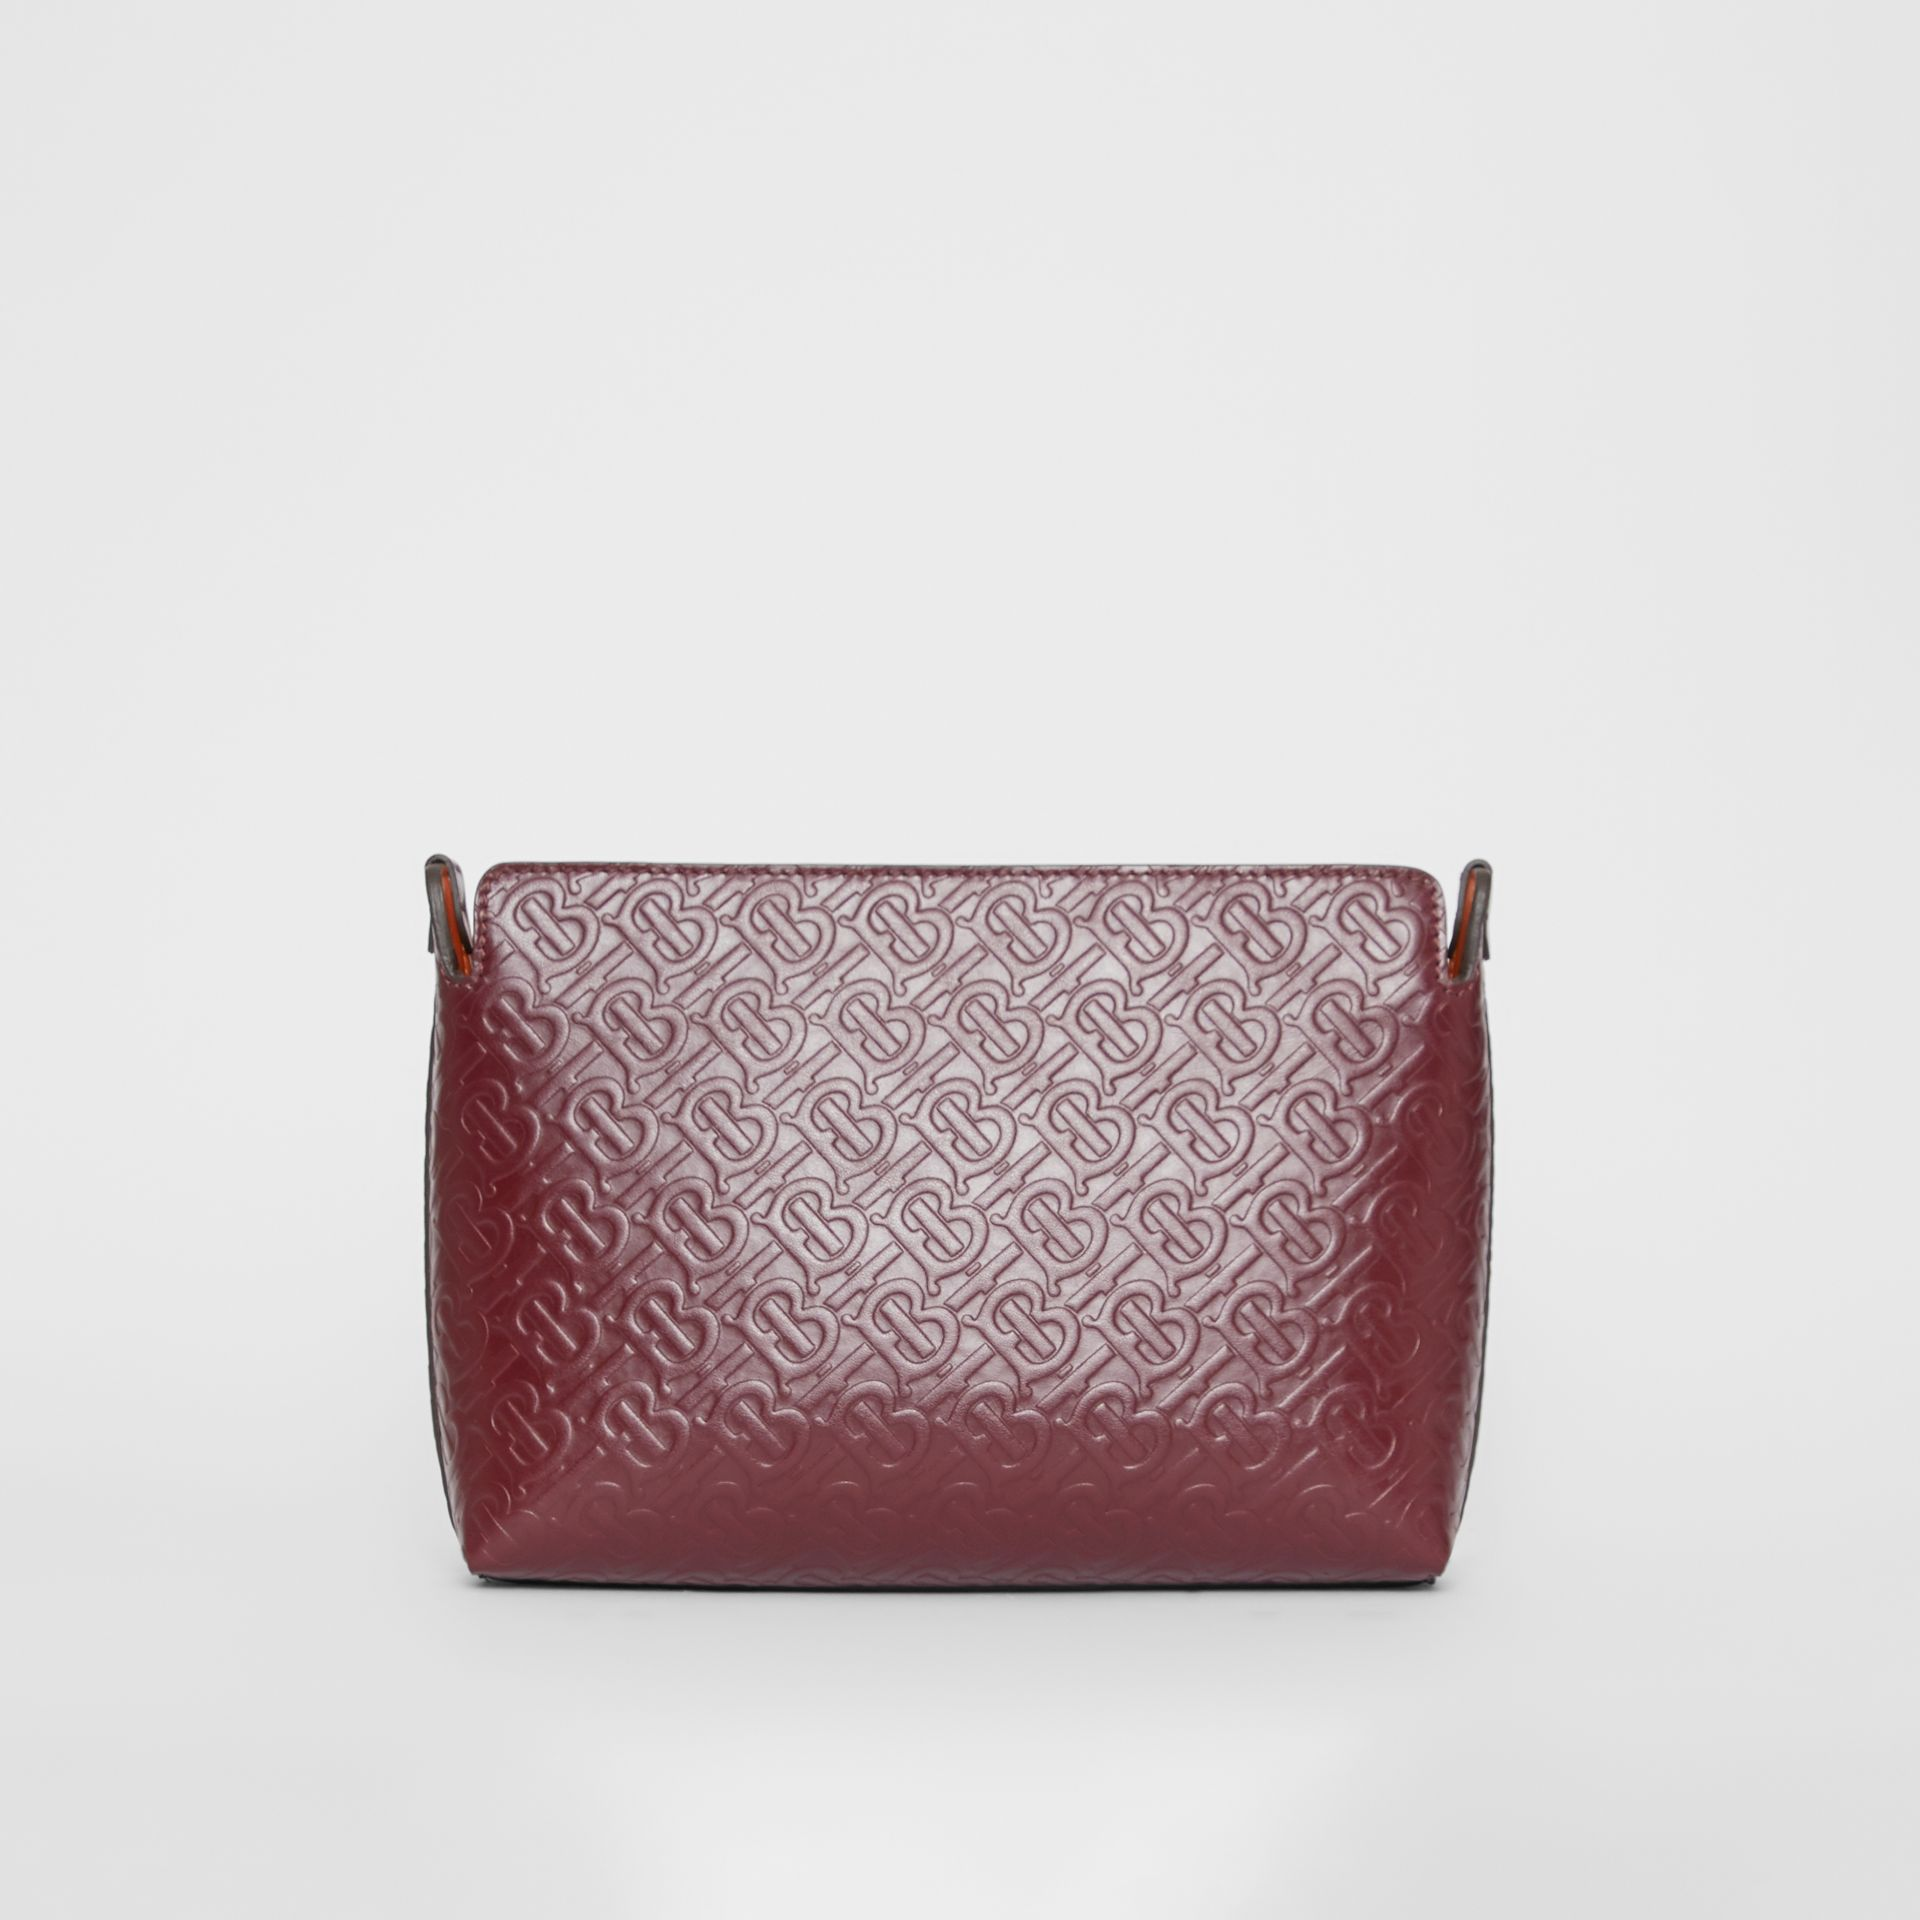 Medium Monogram Leather Clutch in Oxblood - Women | Burberry Australia - gallery image 0